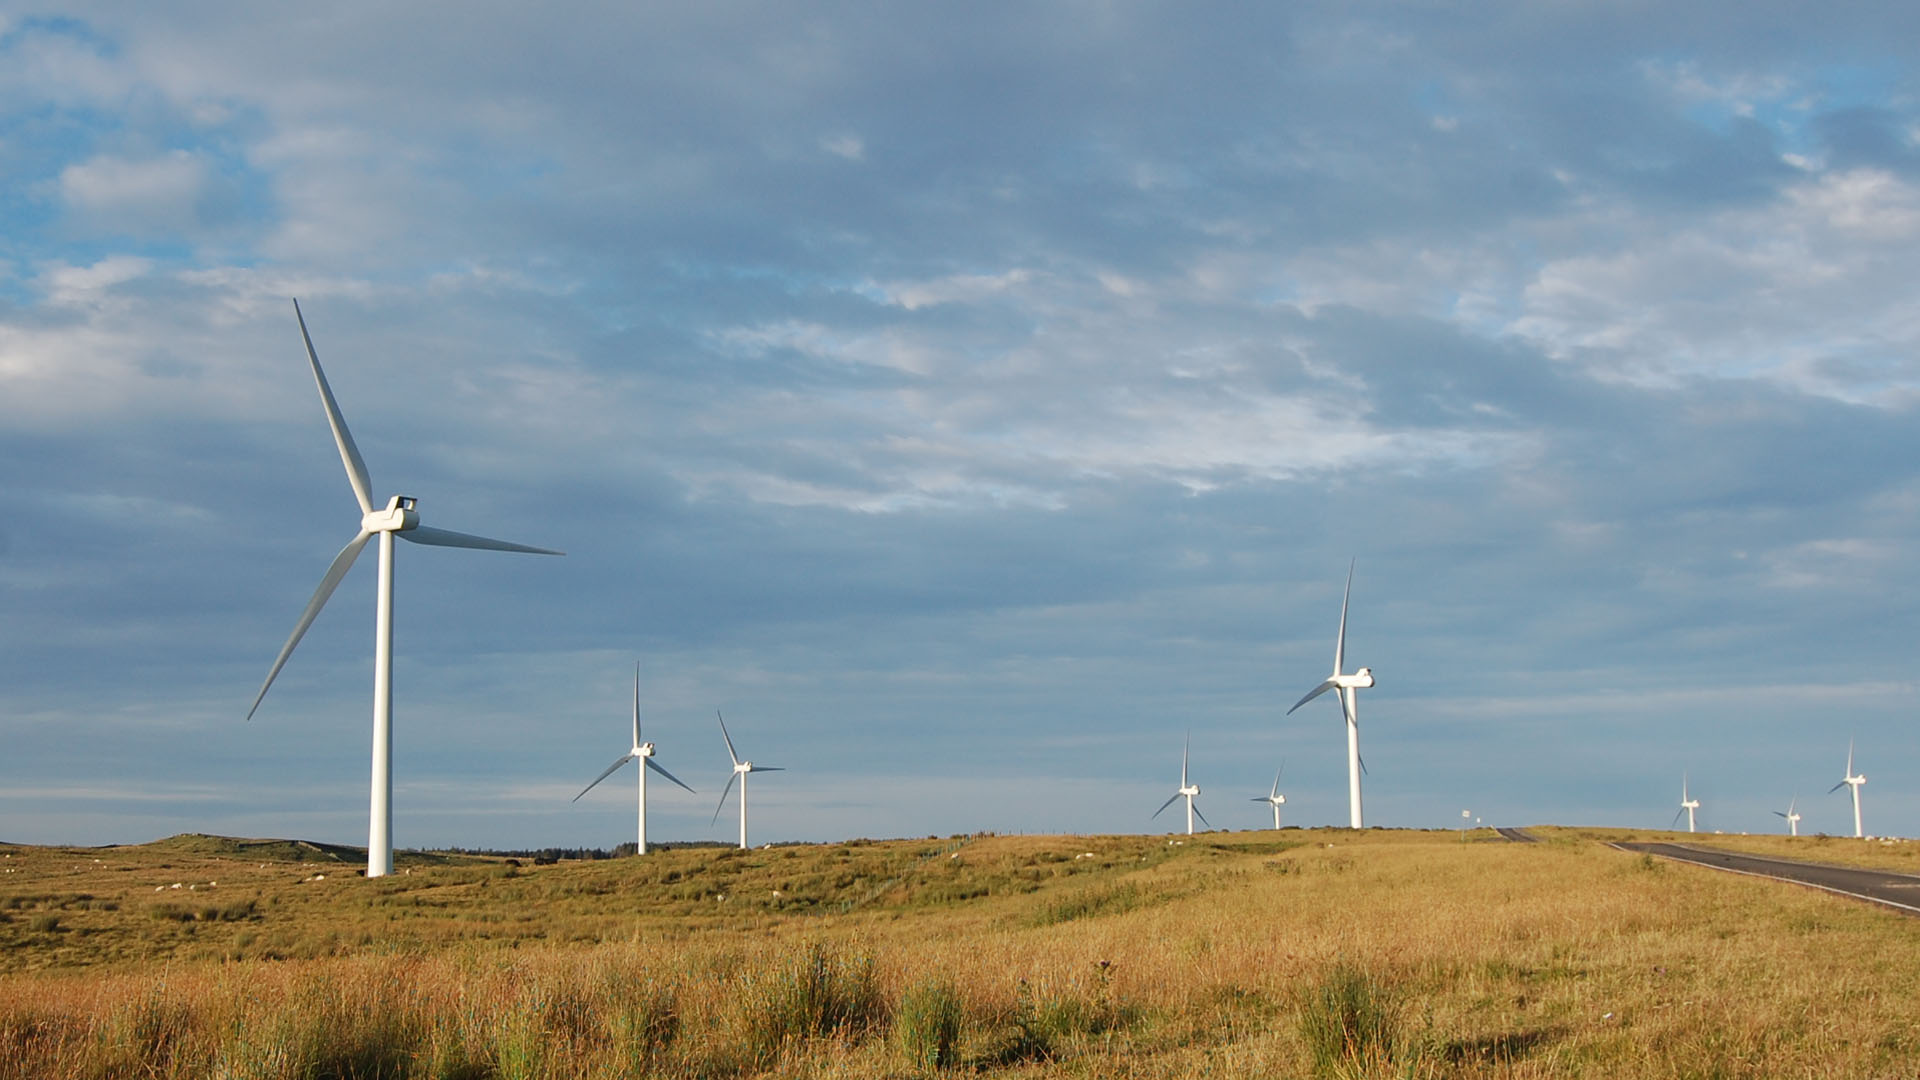 Fourlaw Rigg Windfarm Redesdale Tynedale Northumberland